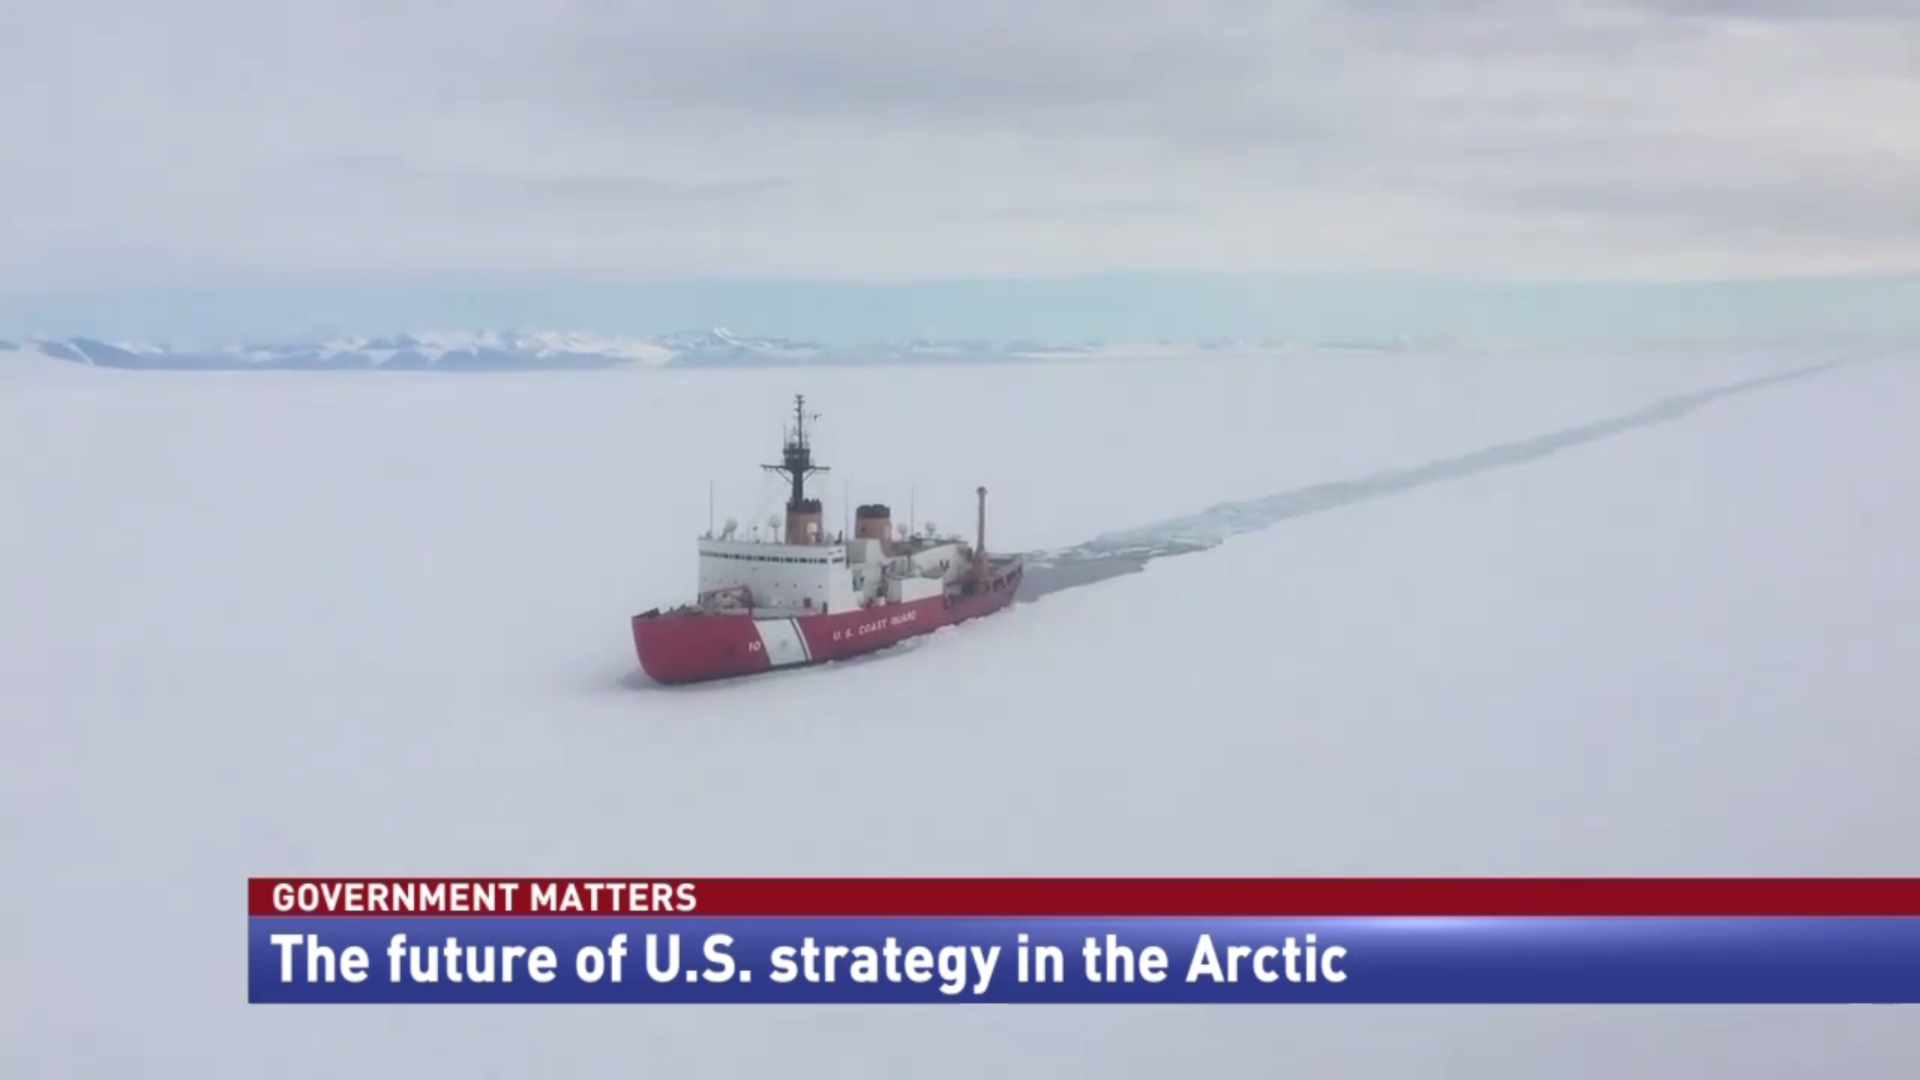 The future of U.S. strategy in the Arctic